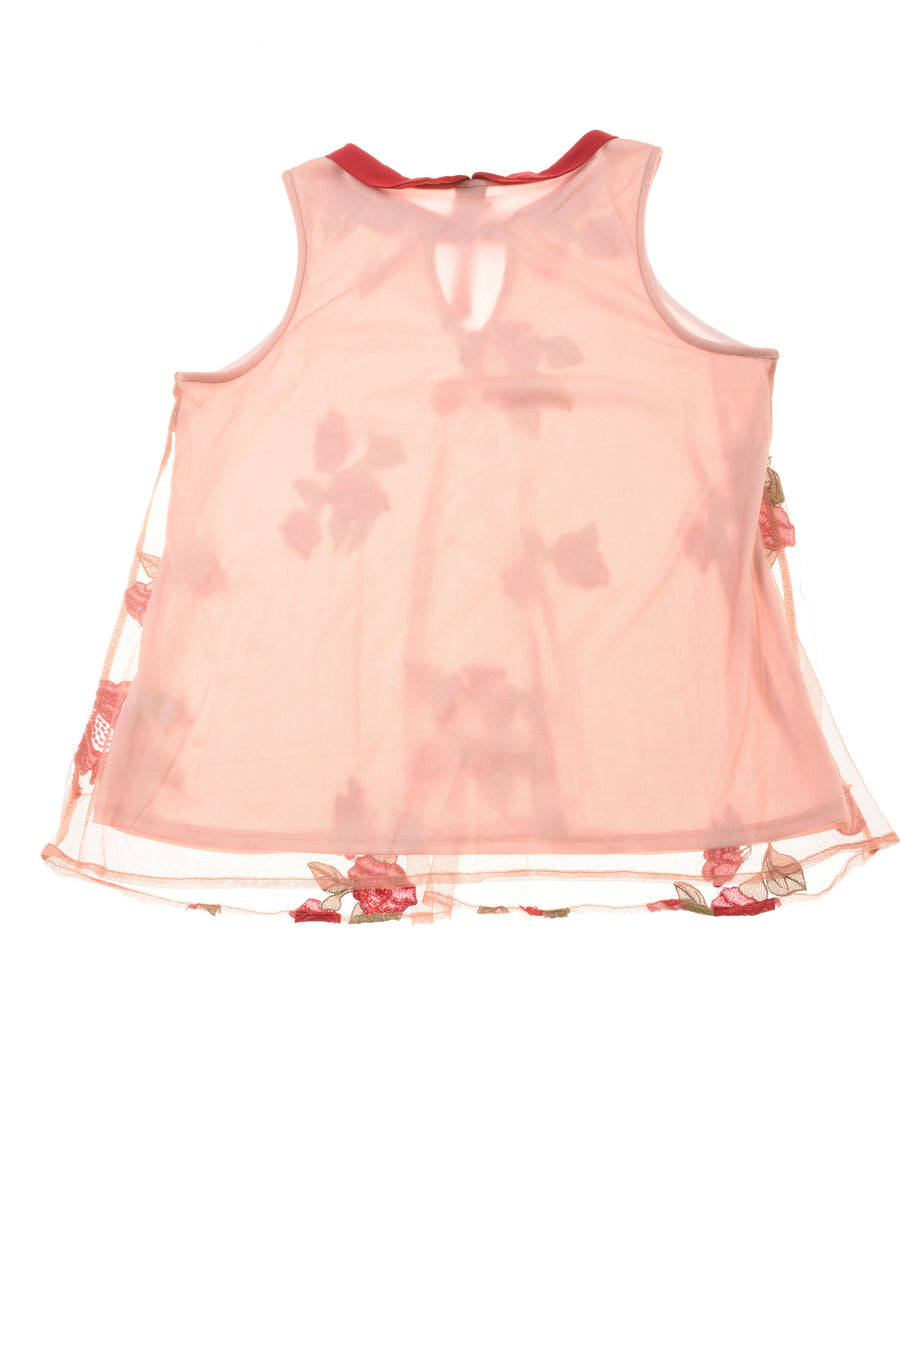 Women's Top By Lauren Conrad